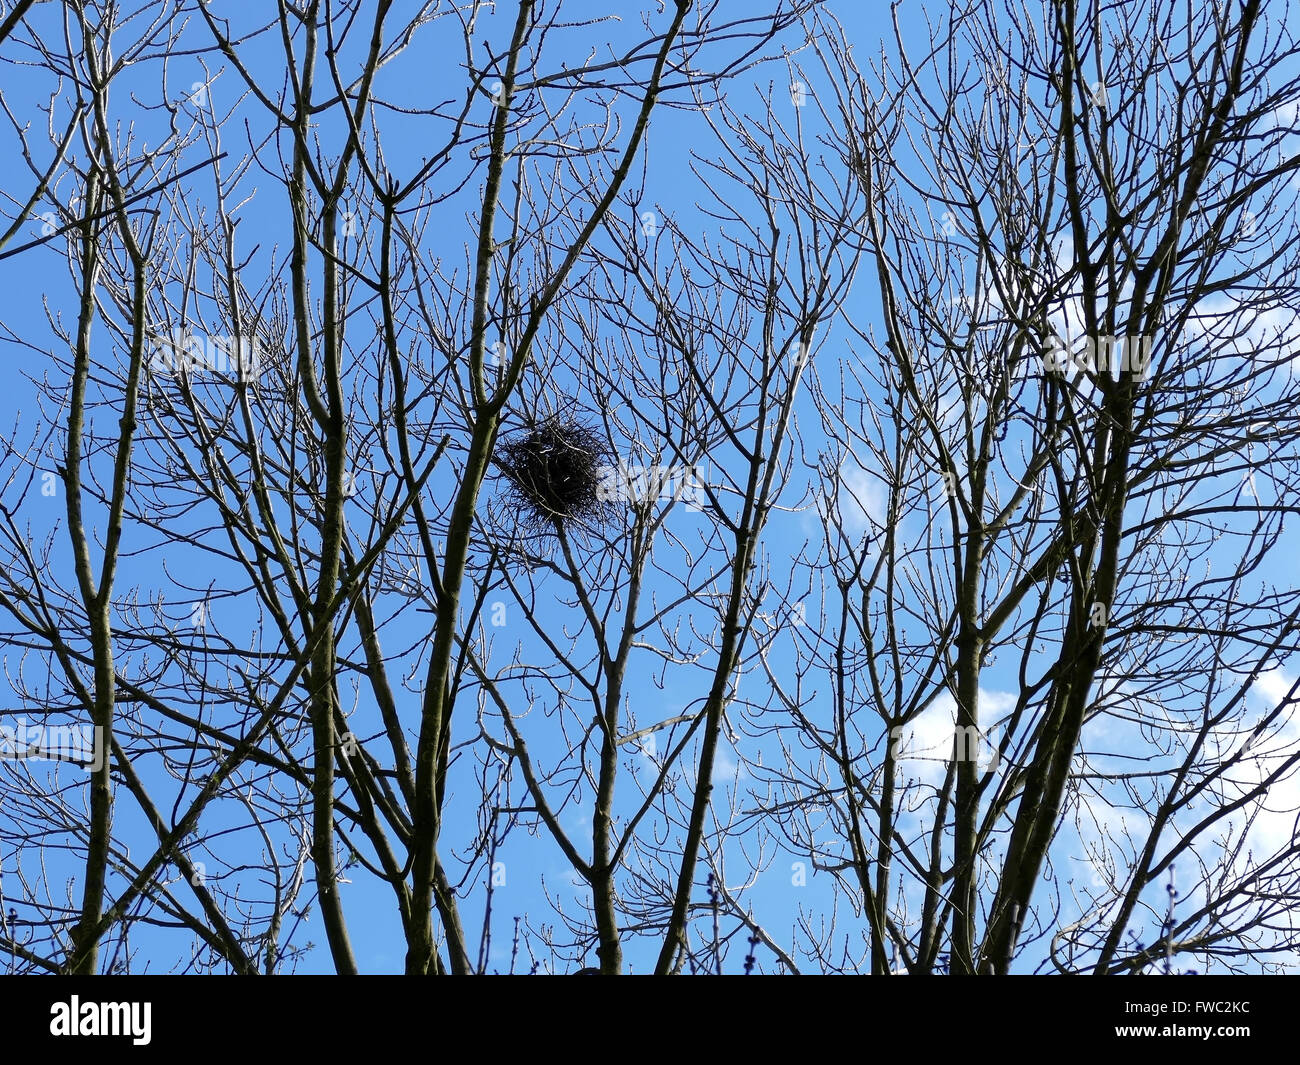 Bird nest high up in trees with blue sky - Stock Image